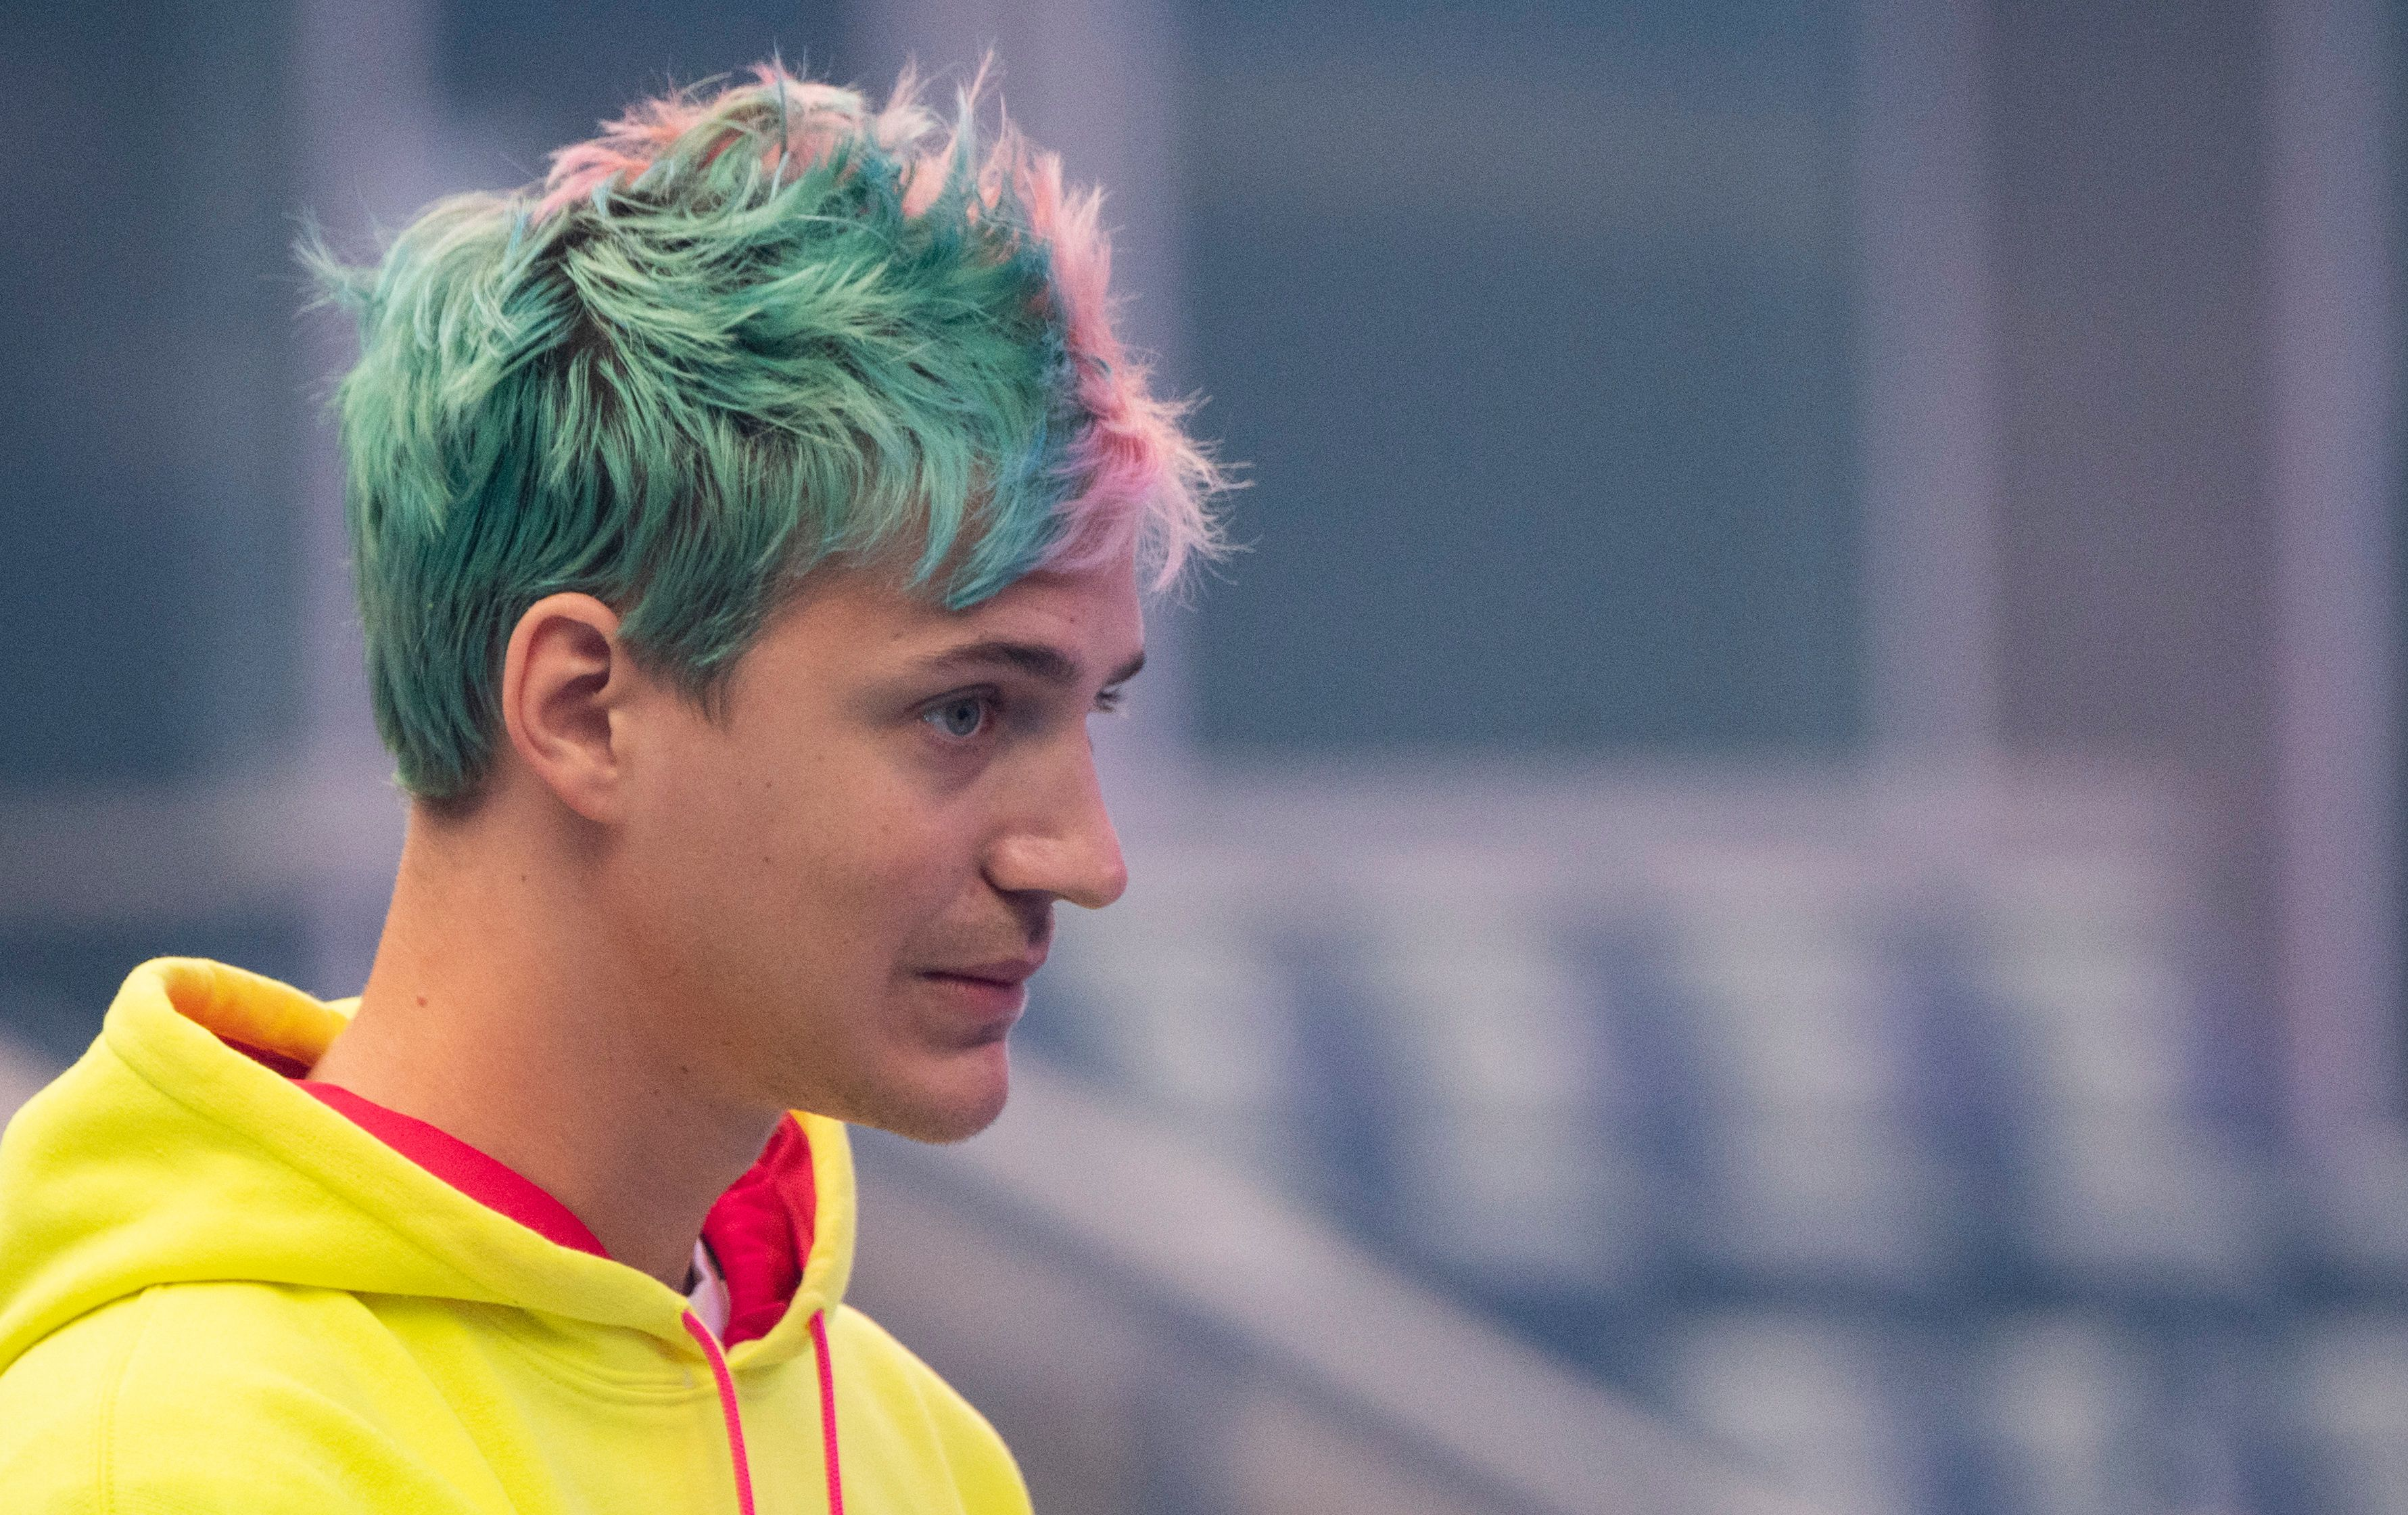 Ninja's deal with Adidas helps put gamers in a new light